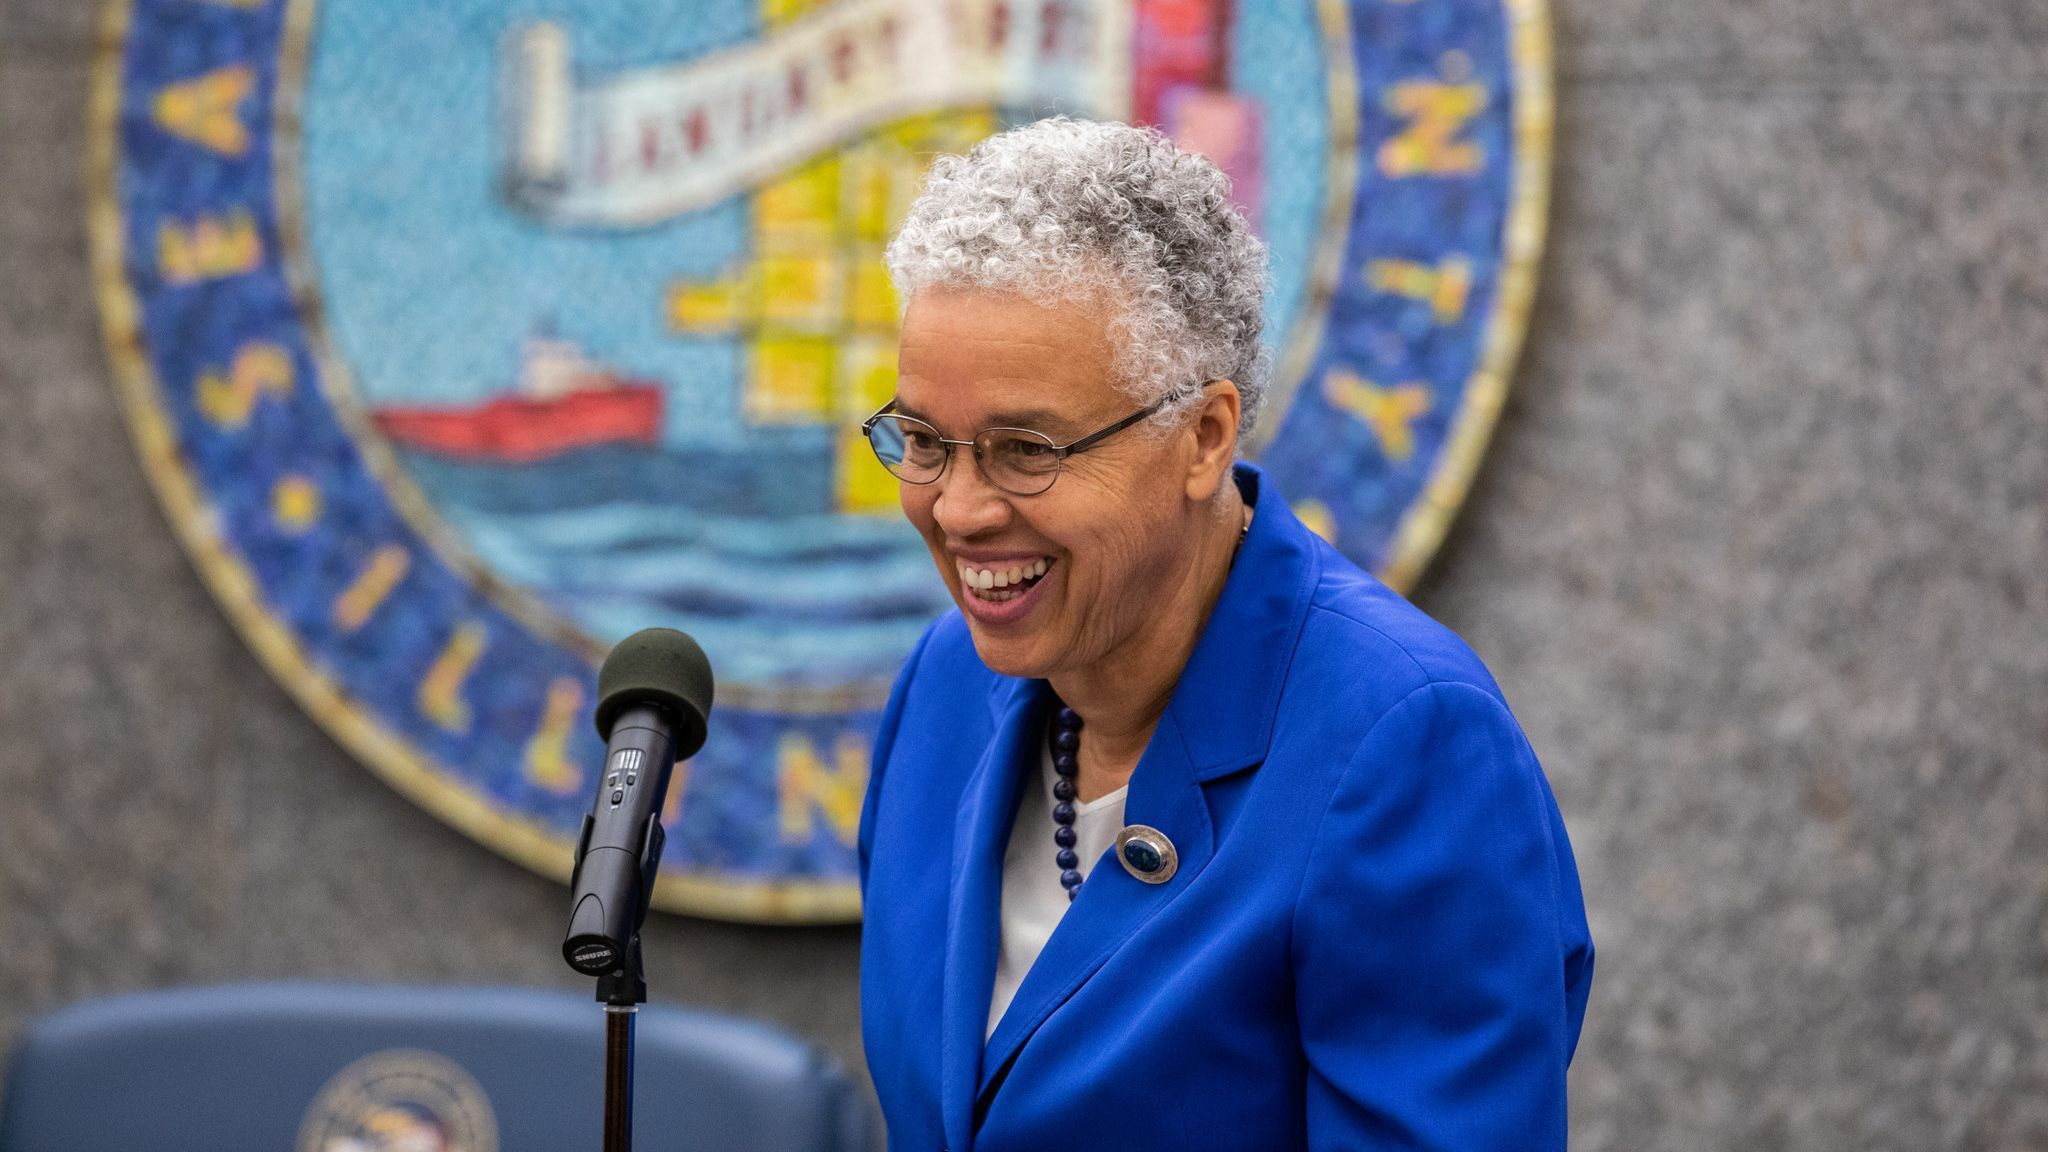 Cook County Board President Toni Preckwinkle to announce run for Chicago mayor this week | Chicago Tribune